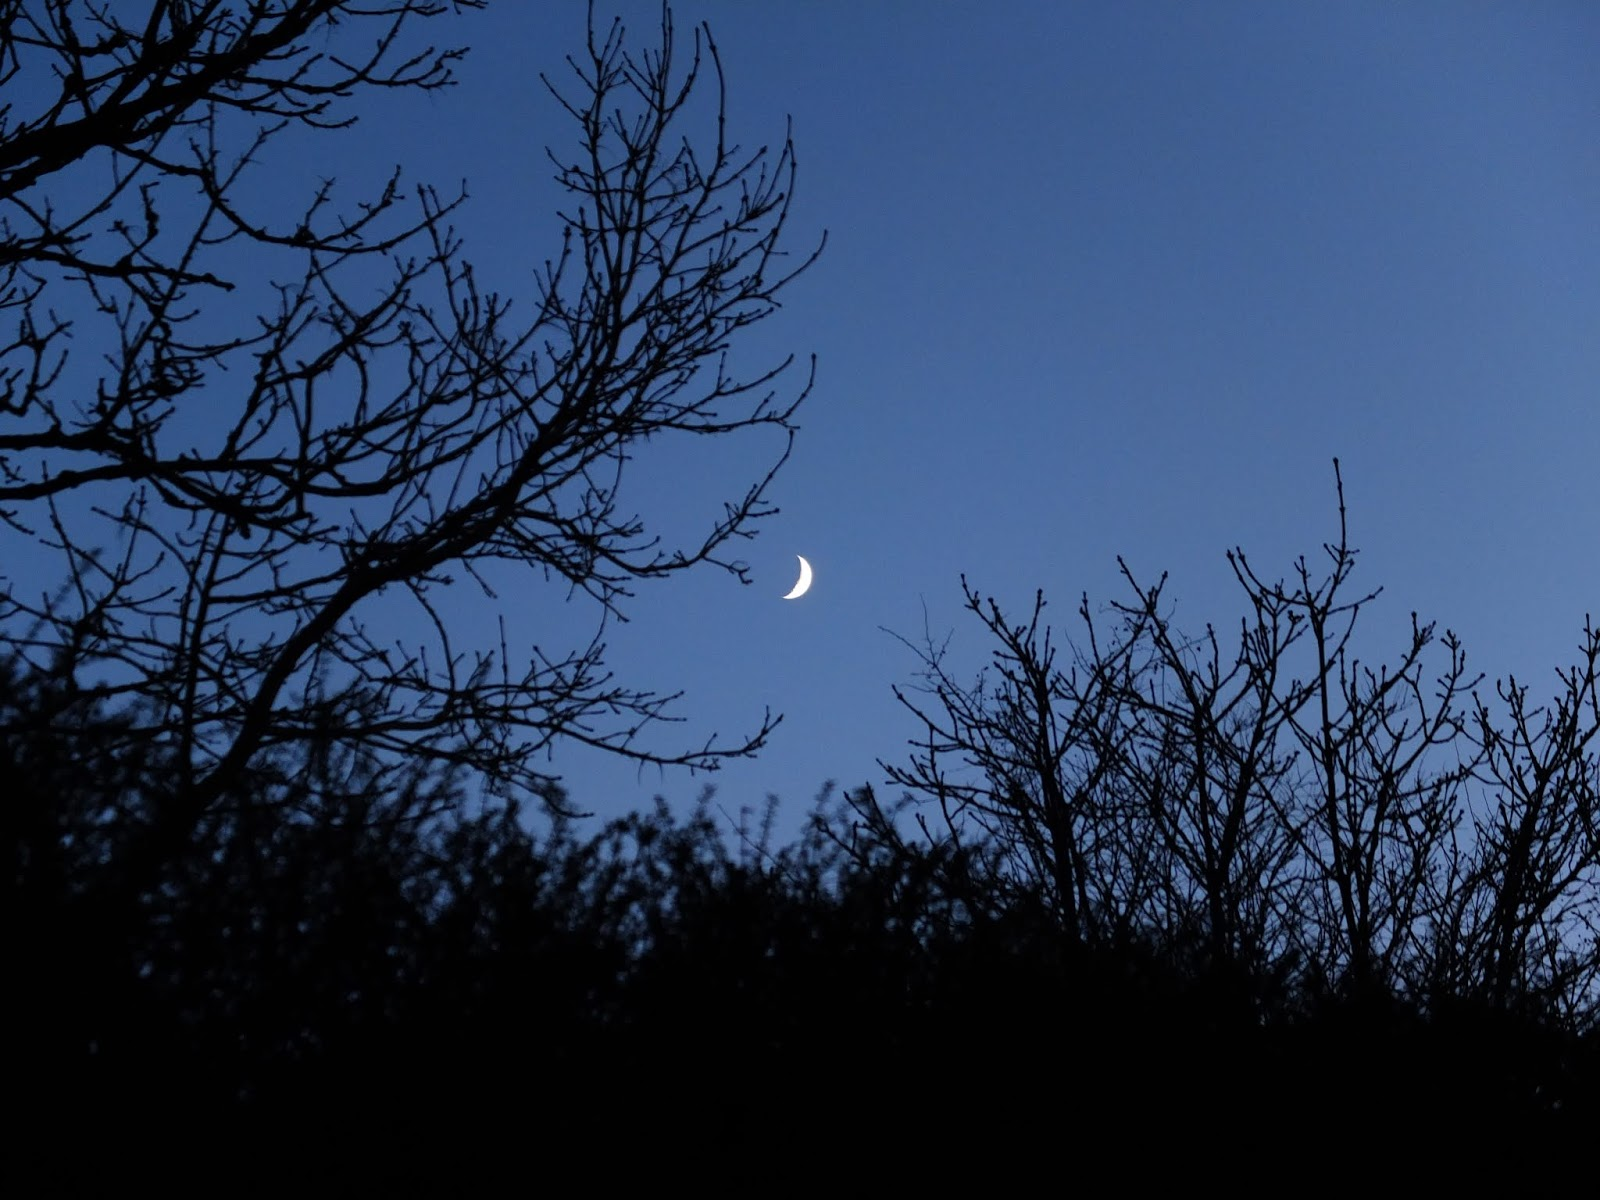 A crescent moon between bare tree branches in the mountains.